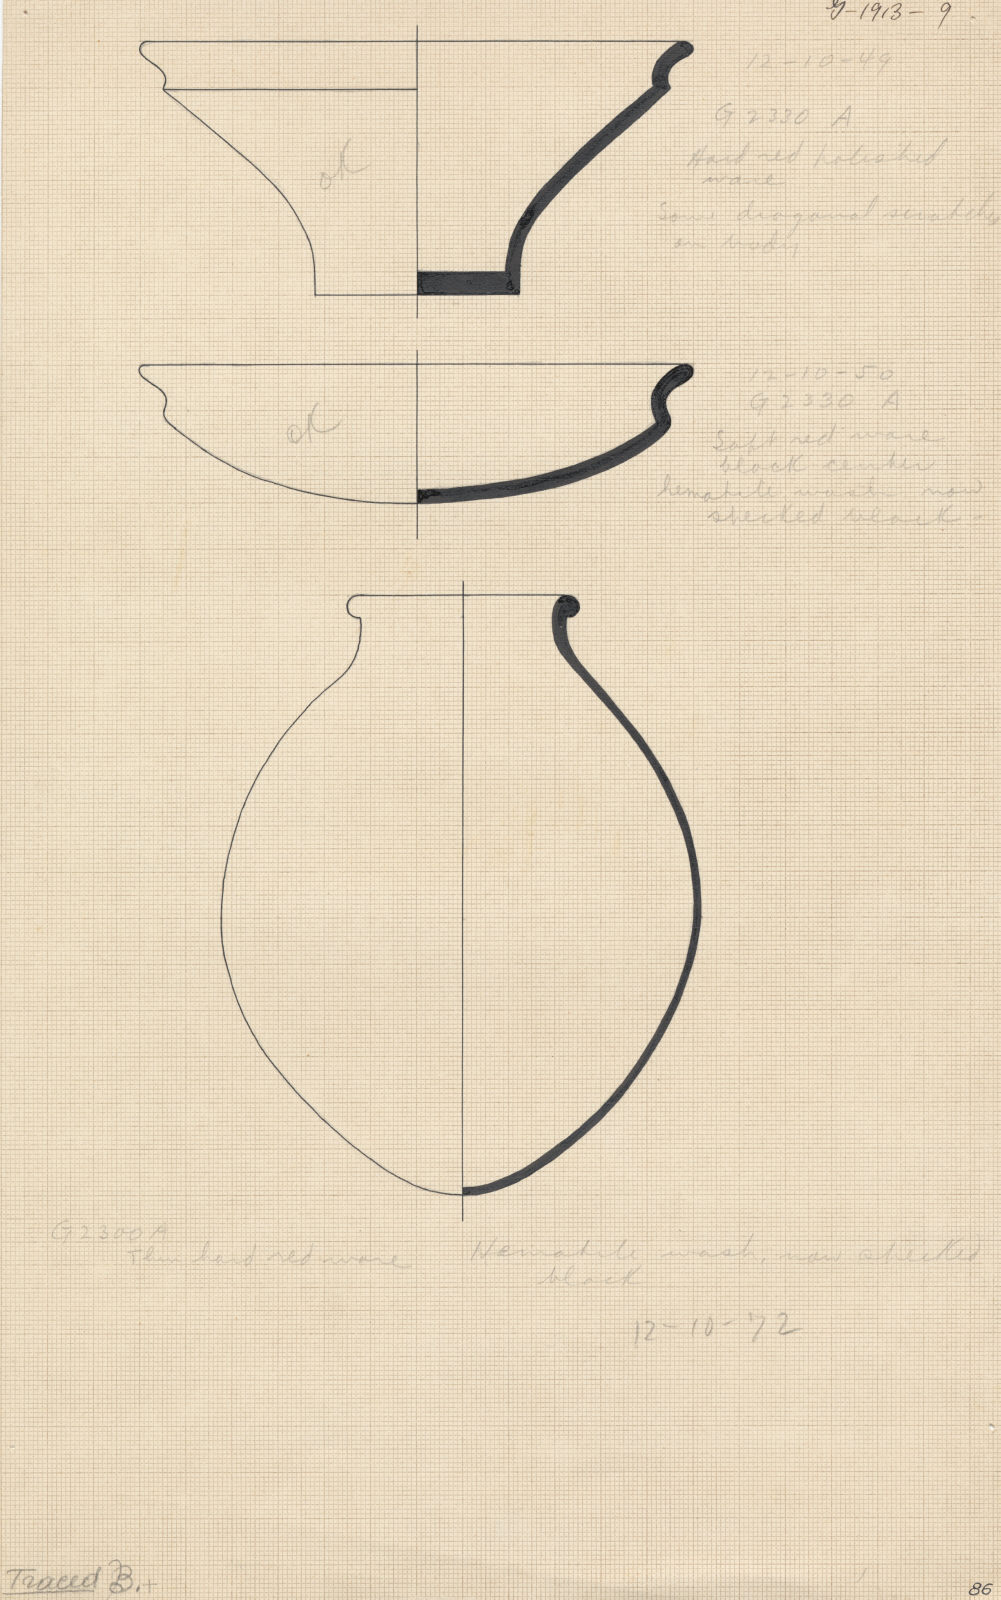 Drawings: Pottery from G 2330 (= G 5380), Shaft A and G 2300 (= G 5190), Shaft A